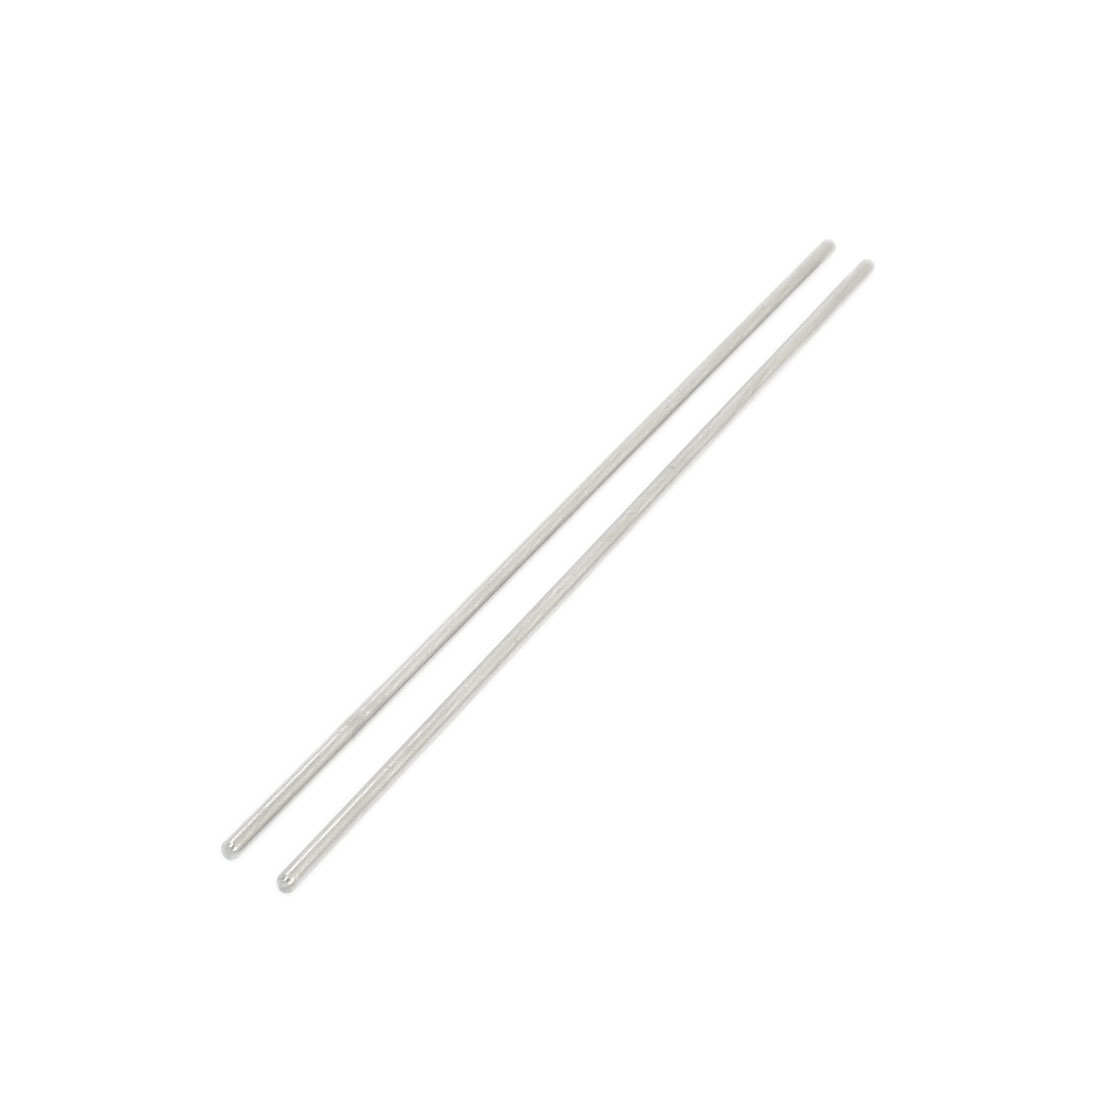 "2Pcs 2mm Diameter Stainless Steel Motion Axle Circular Round Rod Bar 4.7"" Long"